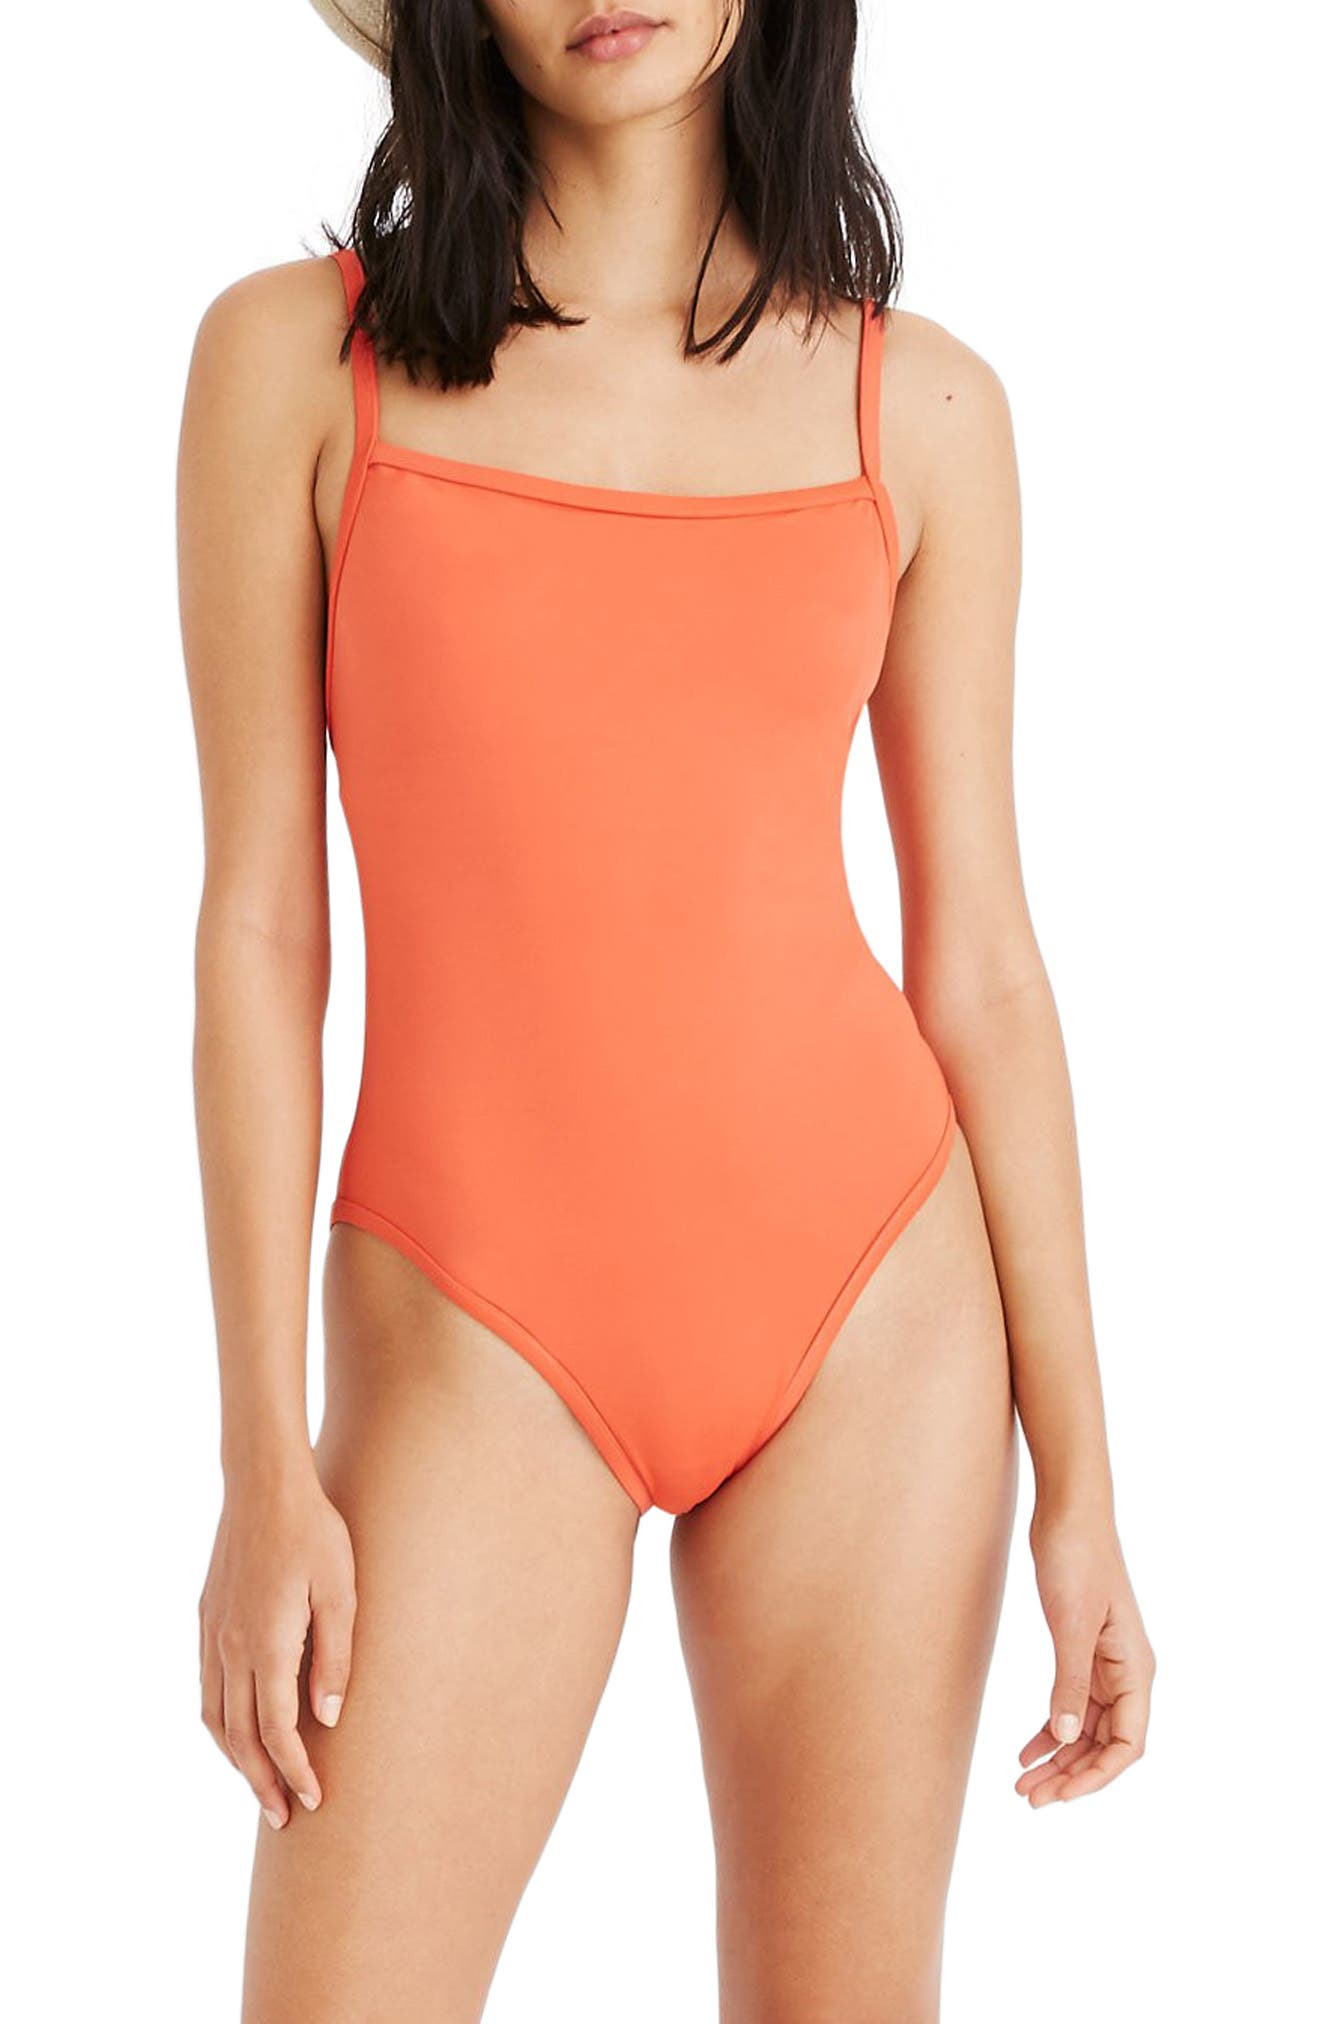 Plus Size Madewell Second Wave Straight One-Piece Swimsuit, Size - Orange